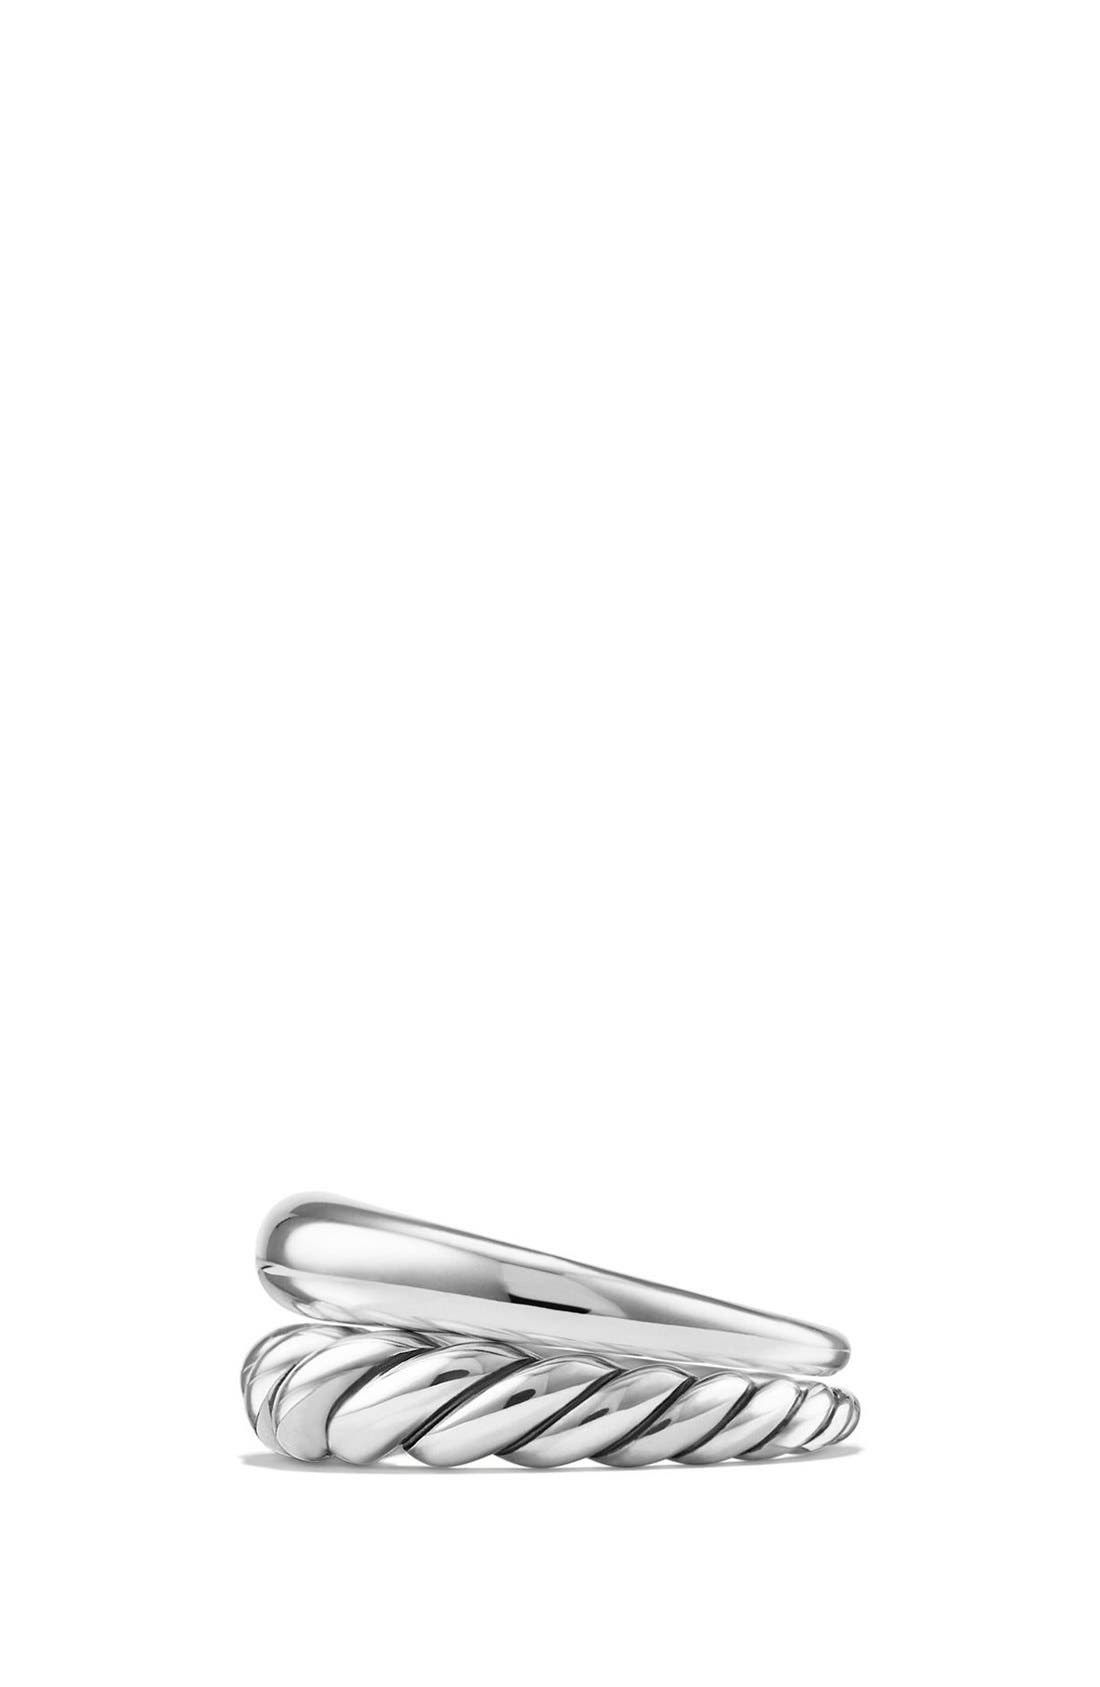 Alternate Image 3  - David Yurman 'Pure Form' Sterling Silver Stacking Rings (Set of 2)